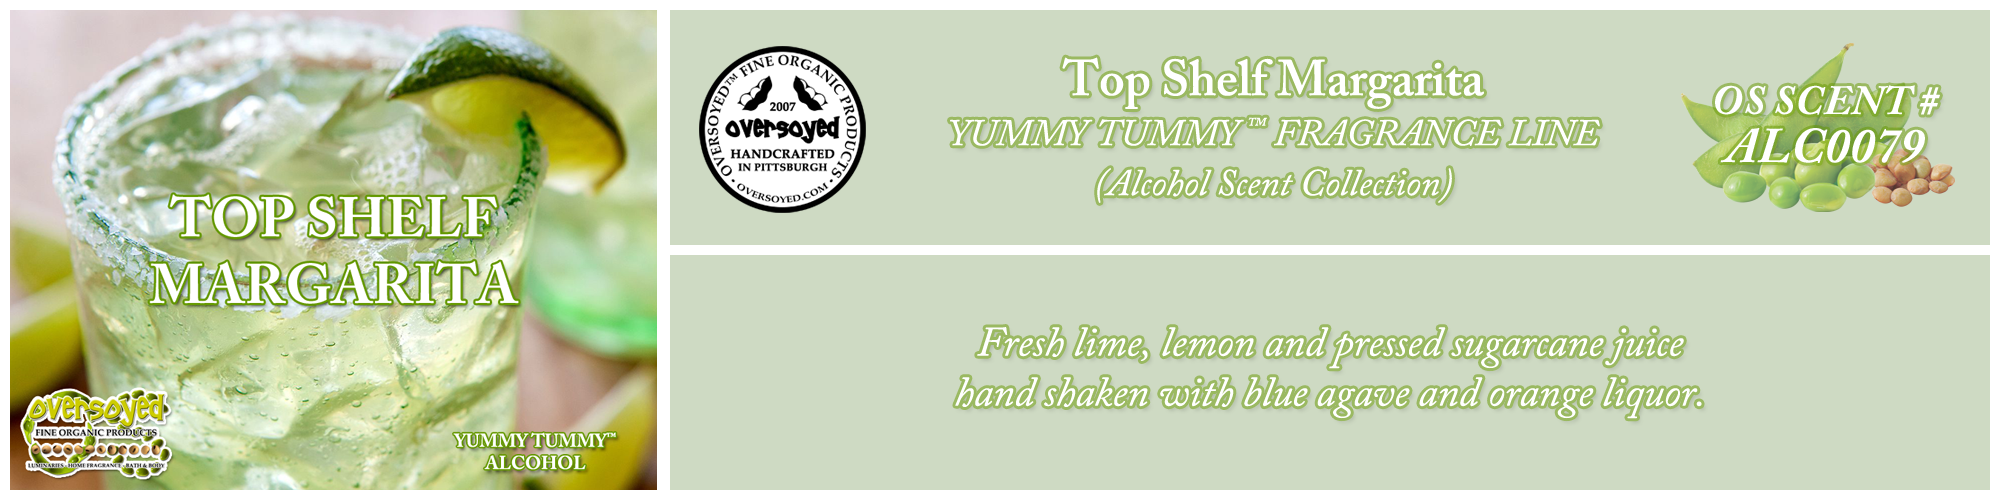 Top Shelf Margarita Handcrafted Products Collection